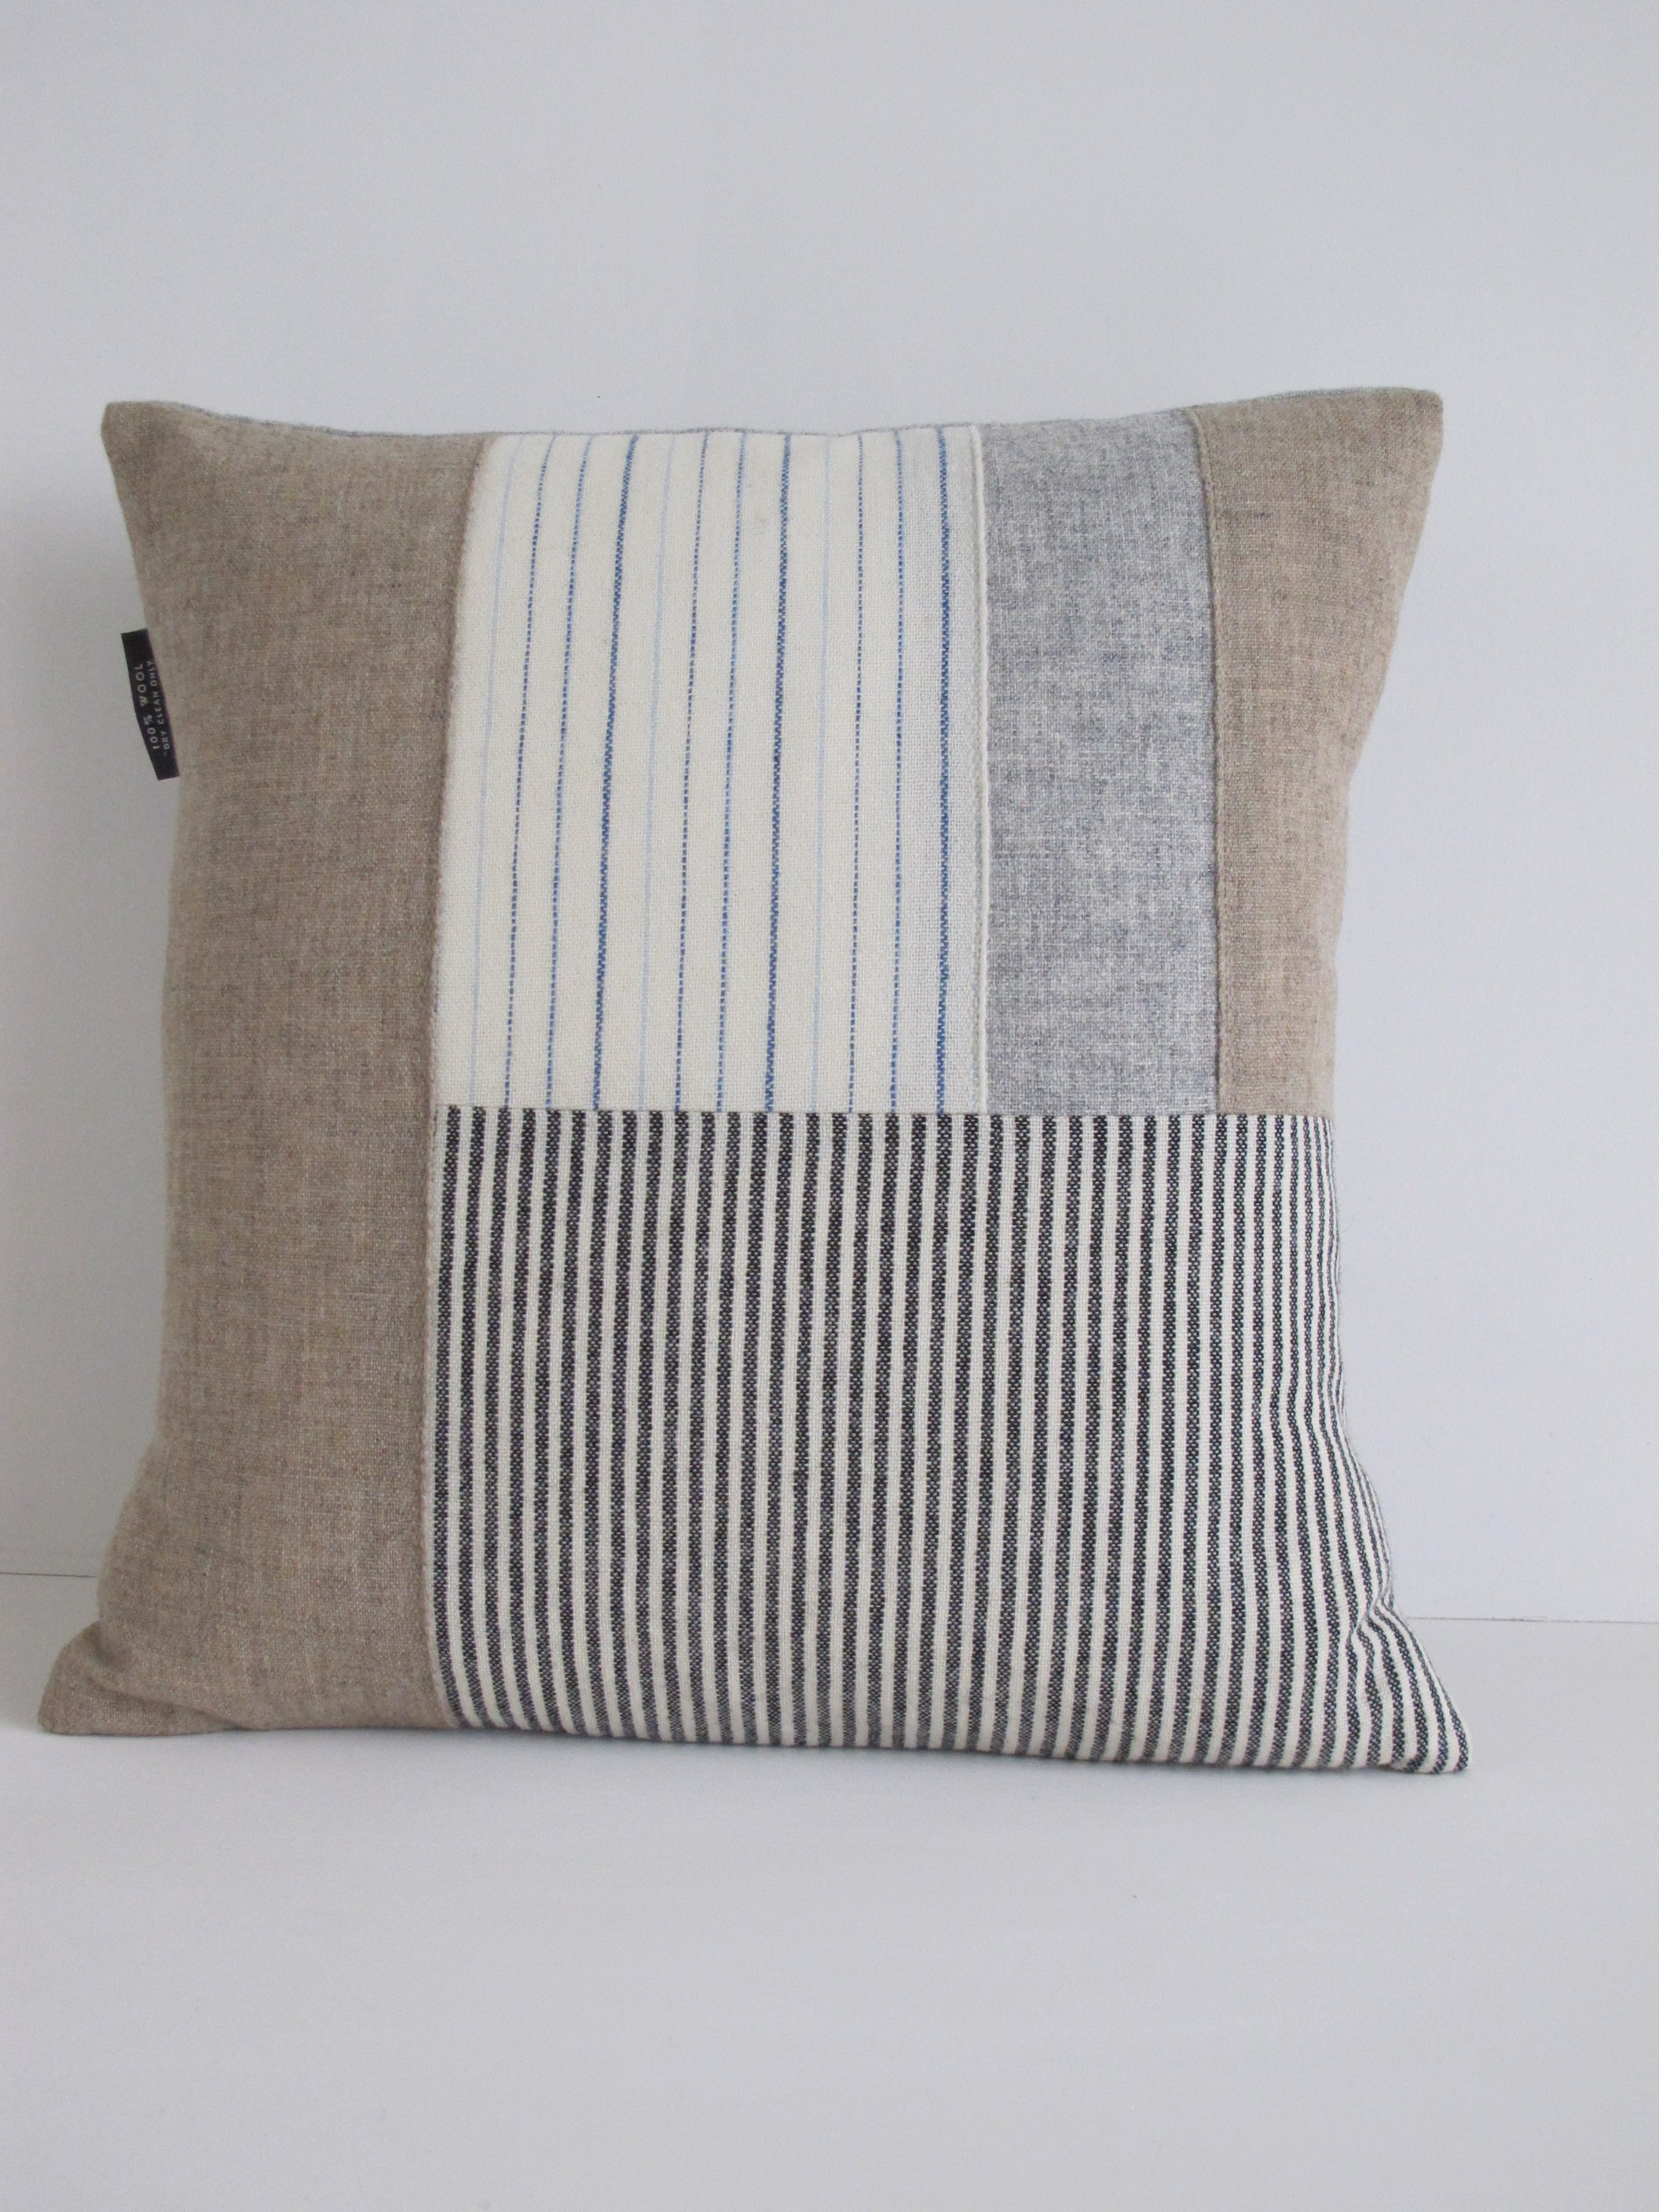 Patchwork Cushion LXI